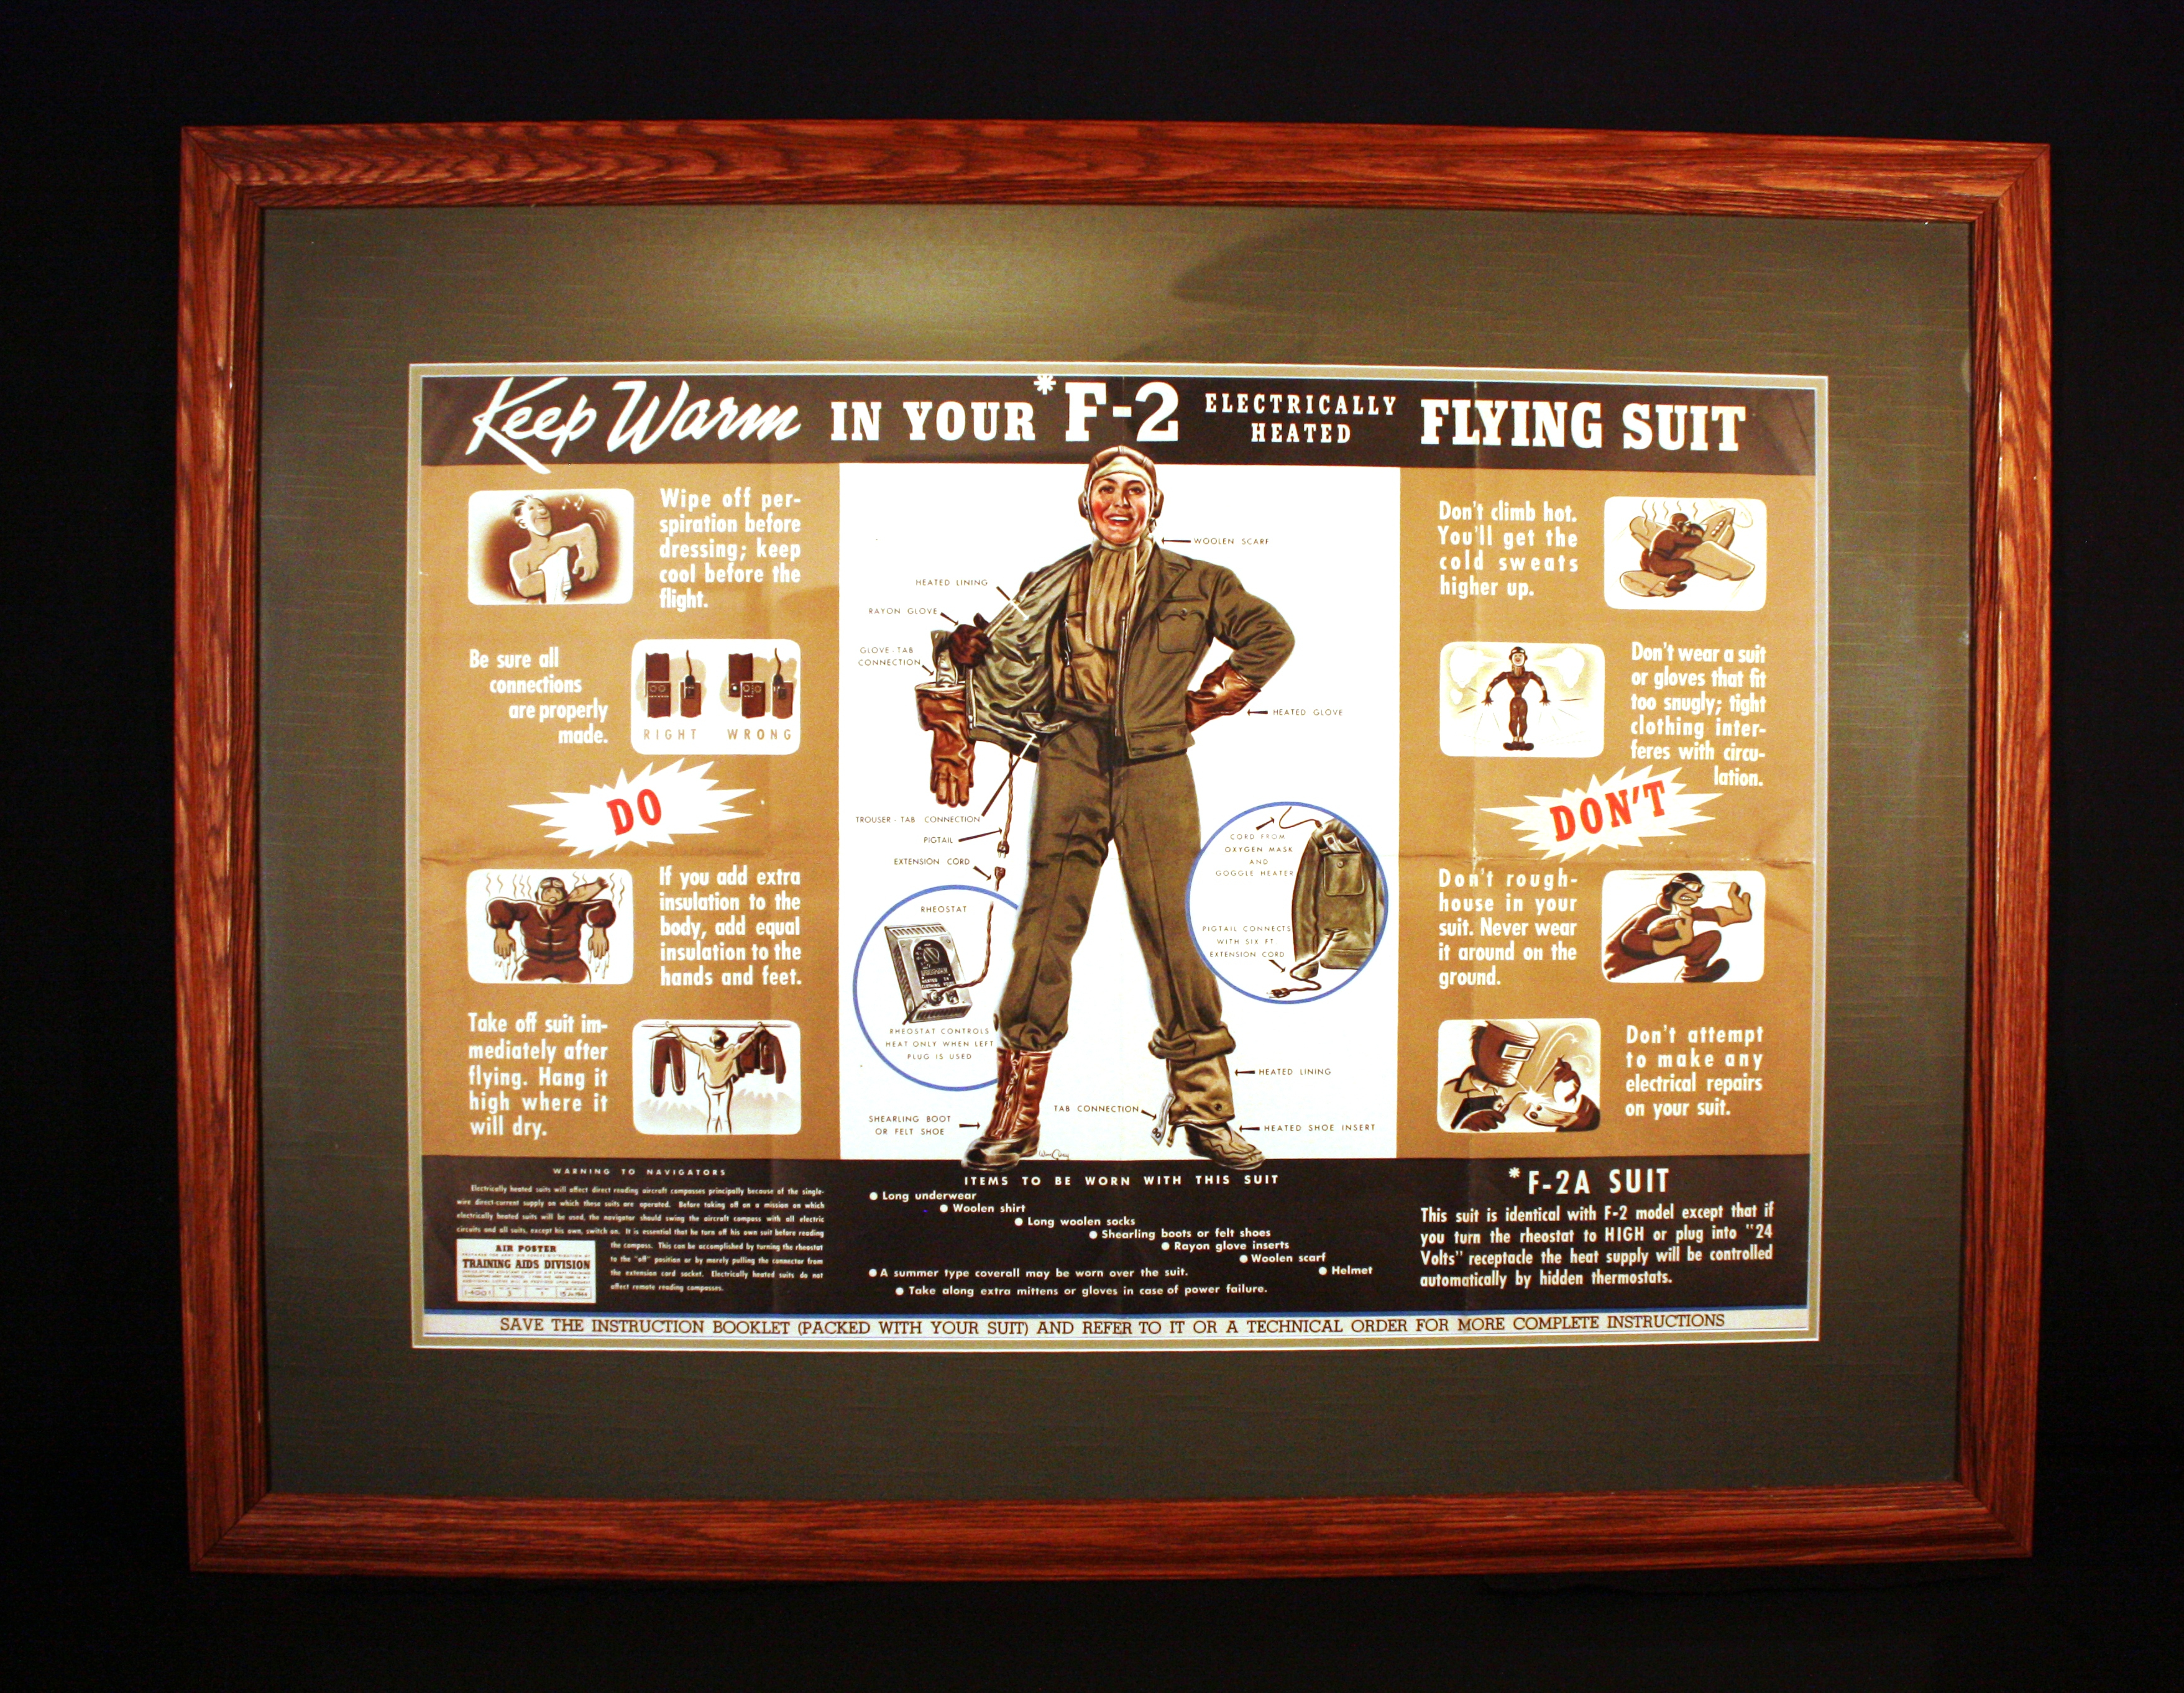 Wwii Uniforms Flight Gear 1944 1945 F 2 Heated Suit Jacket Wiring 3 4 Here Is An Original Air Poster From The Training Aids Division Dated July Many Posters Were Created And Then Posted Where Crews Would